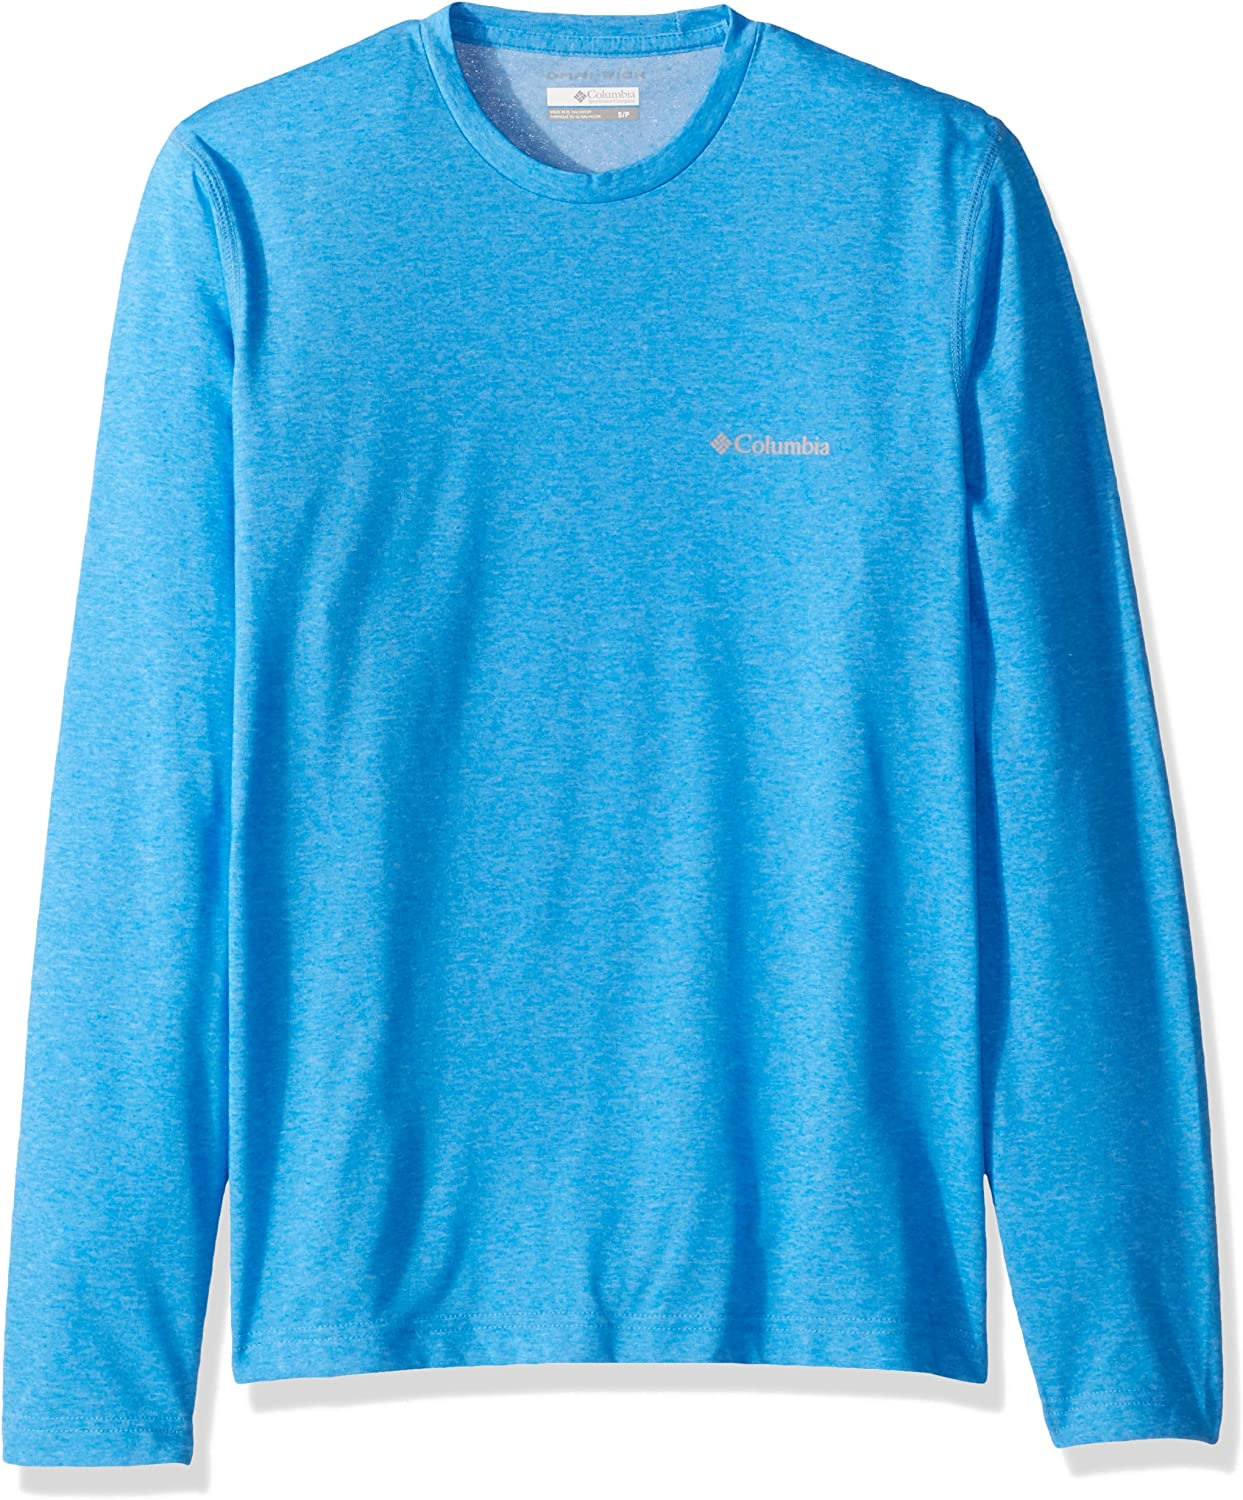 Columbia Mens Tall Size Thistletown Park Long Sleeve Crew